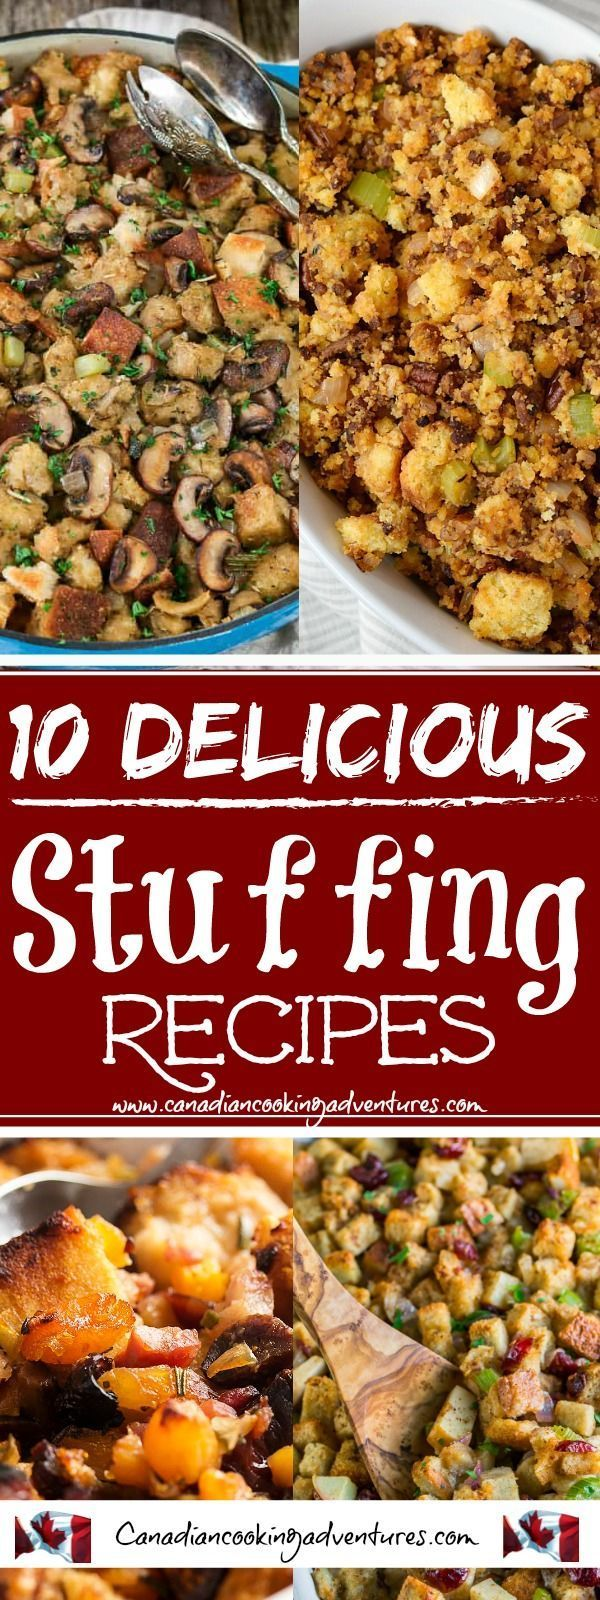 10 Delicious Stuffing Recipes 10 Stuffing Recipes!!